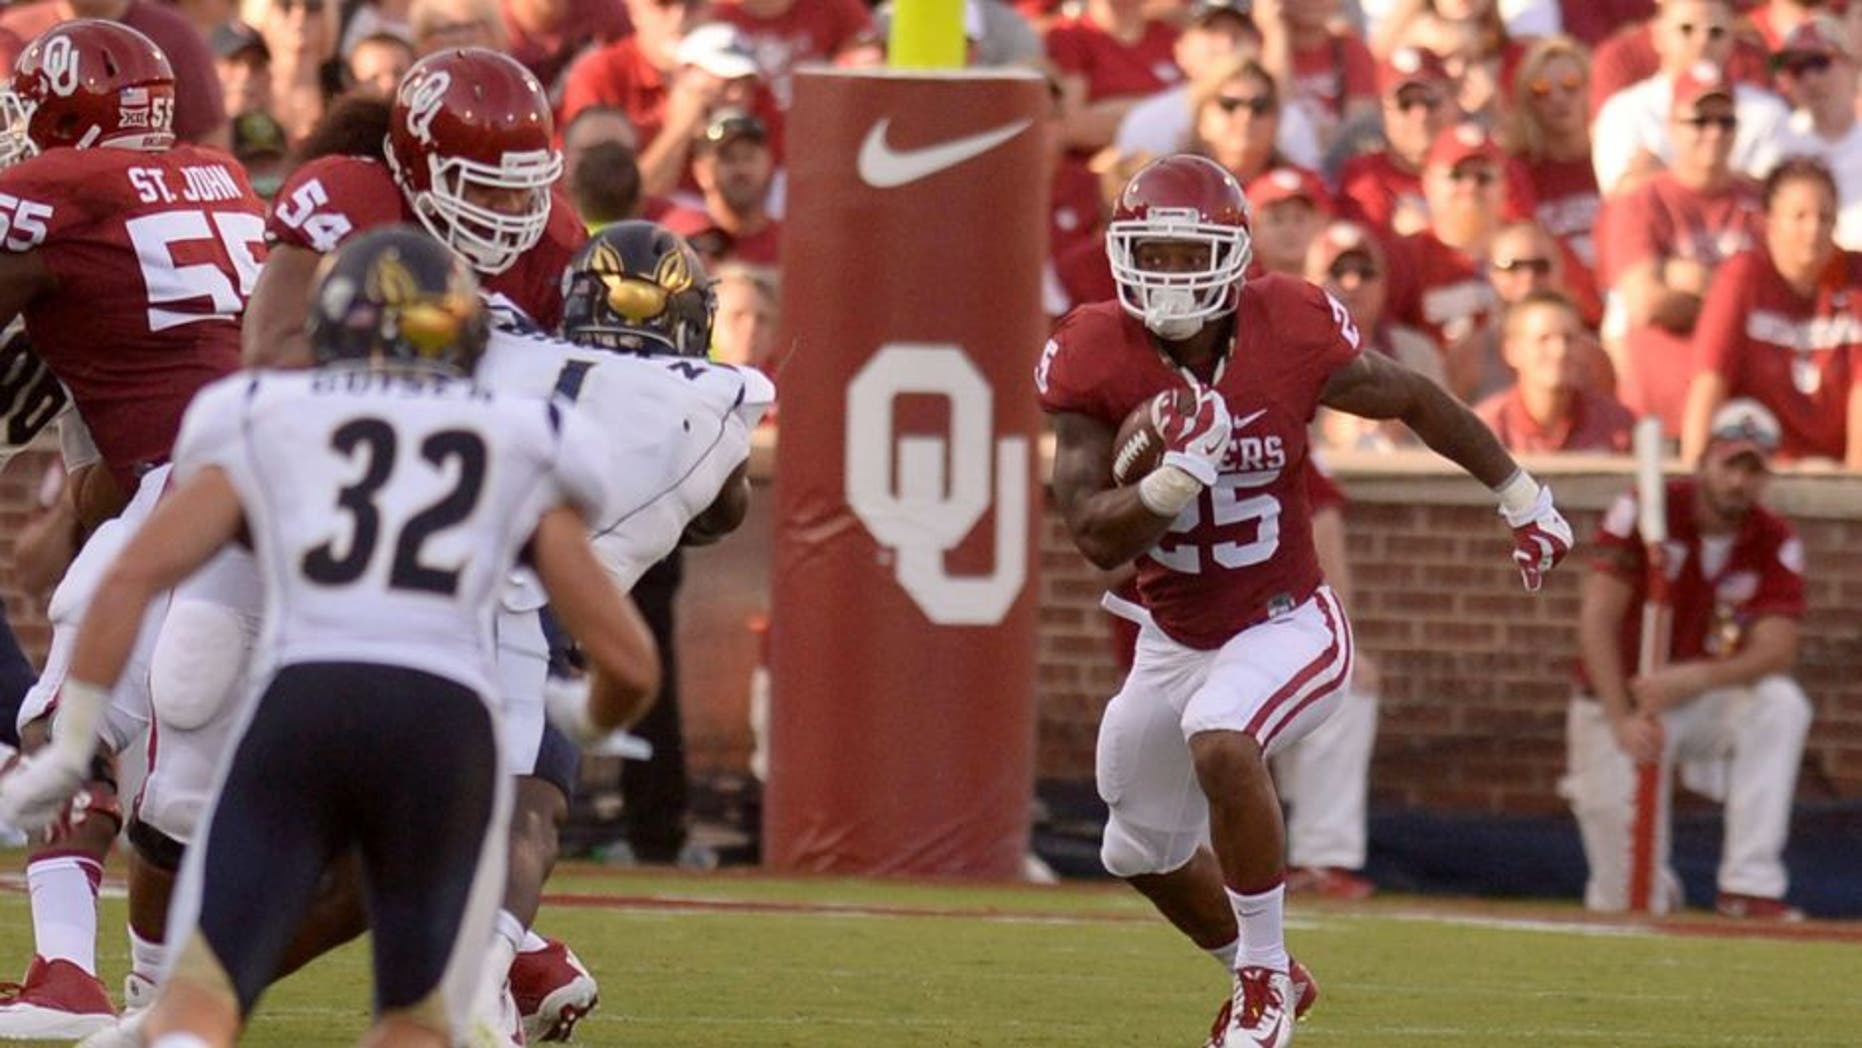 Sep 5, 2015; Norman, OK, USA; Oklahoma Sooners running back Joe Mixon (25) runs the ball against the Akron Zips during the third quarter at Gaylord Family - Oklahoma Memorial Stadium. Mandatory Credit: Mark D. Smith-USA TODAY Sports